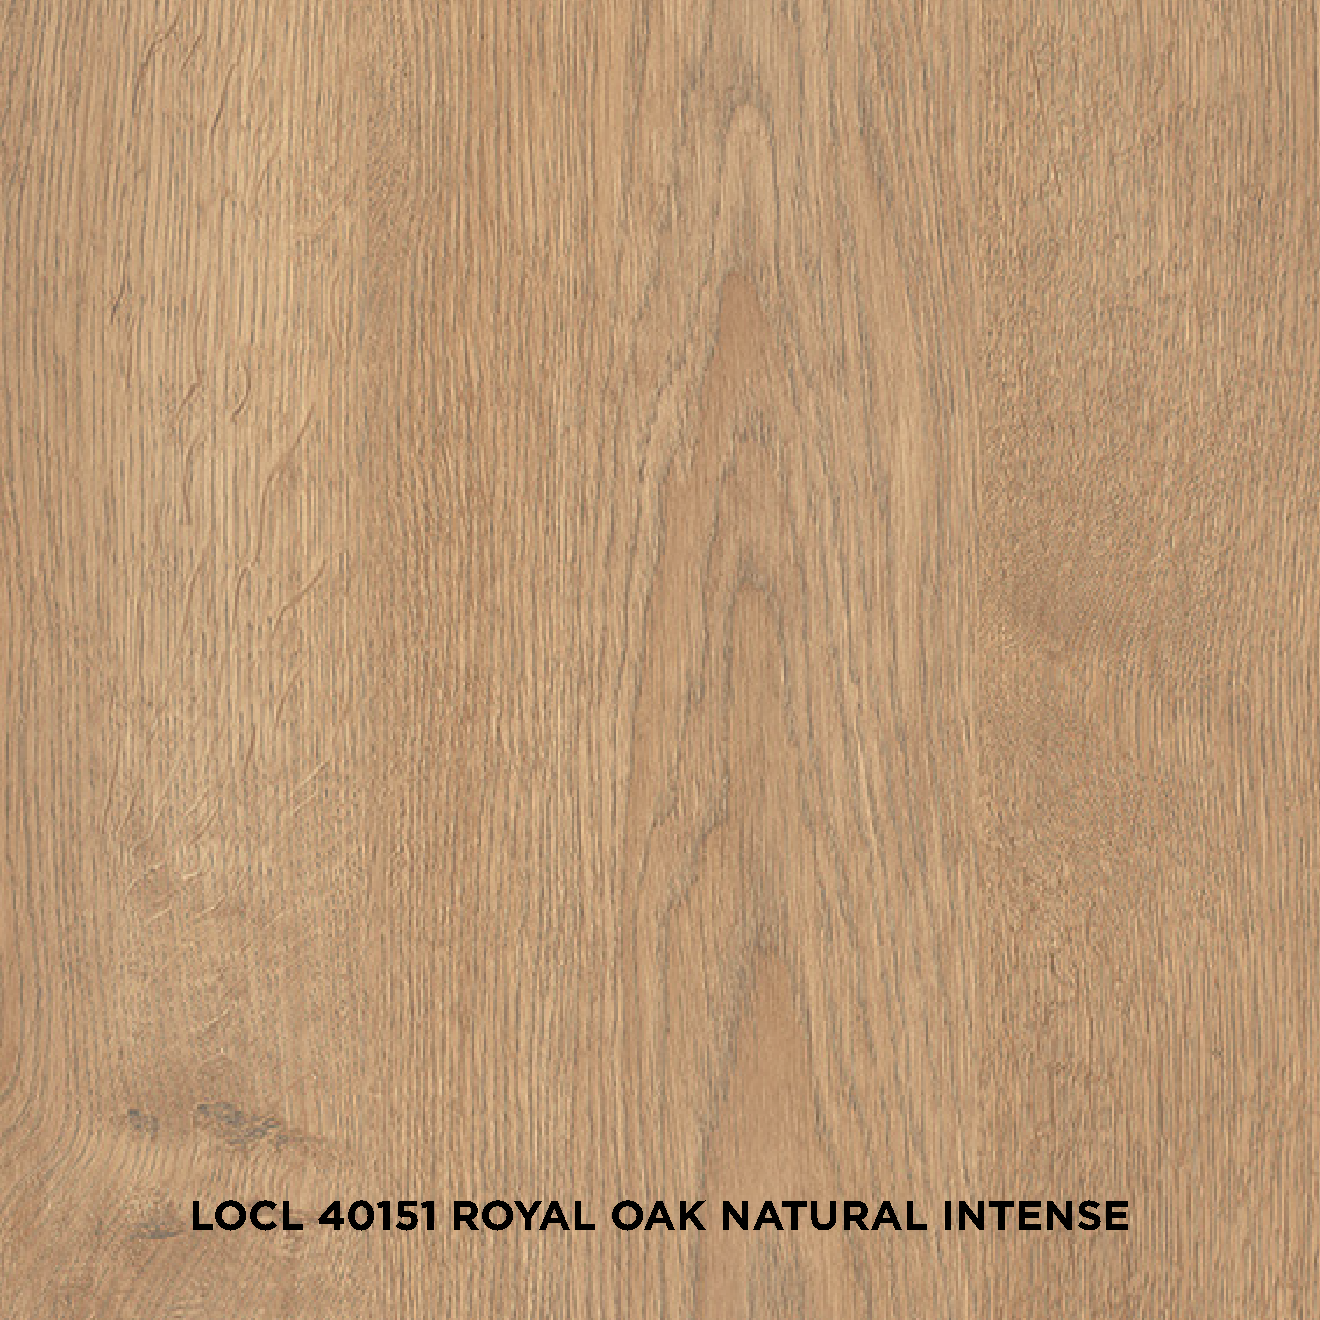 LOCL 40151 ROYAL OAK NATURAL INTENSE